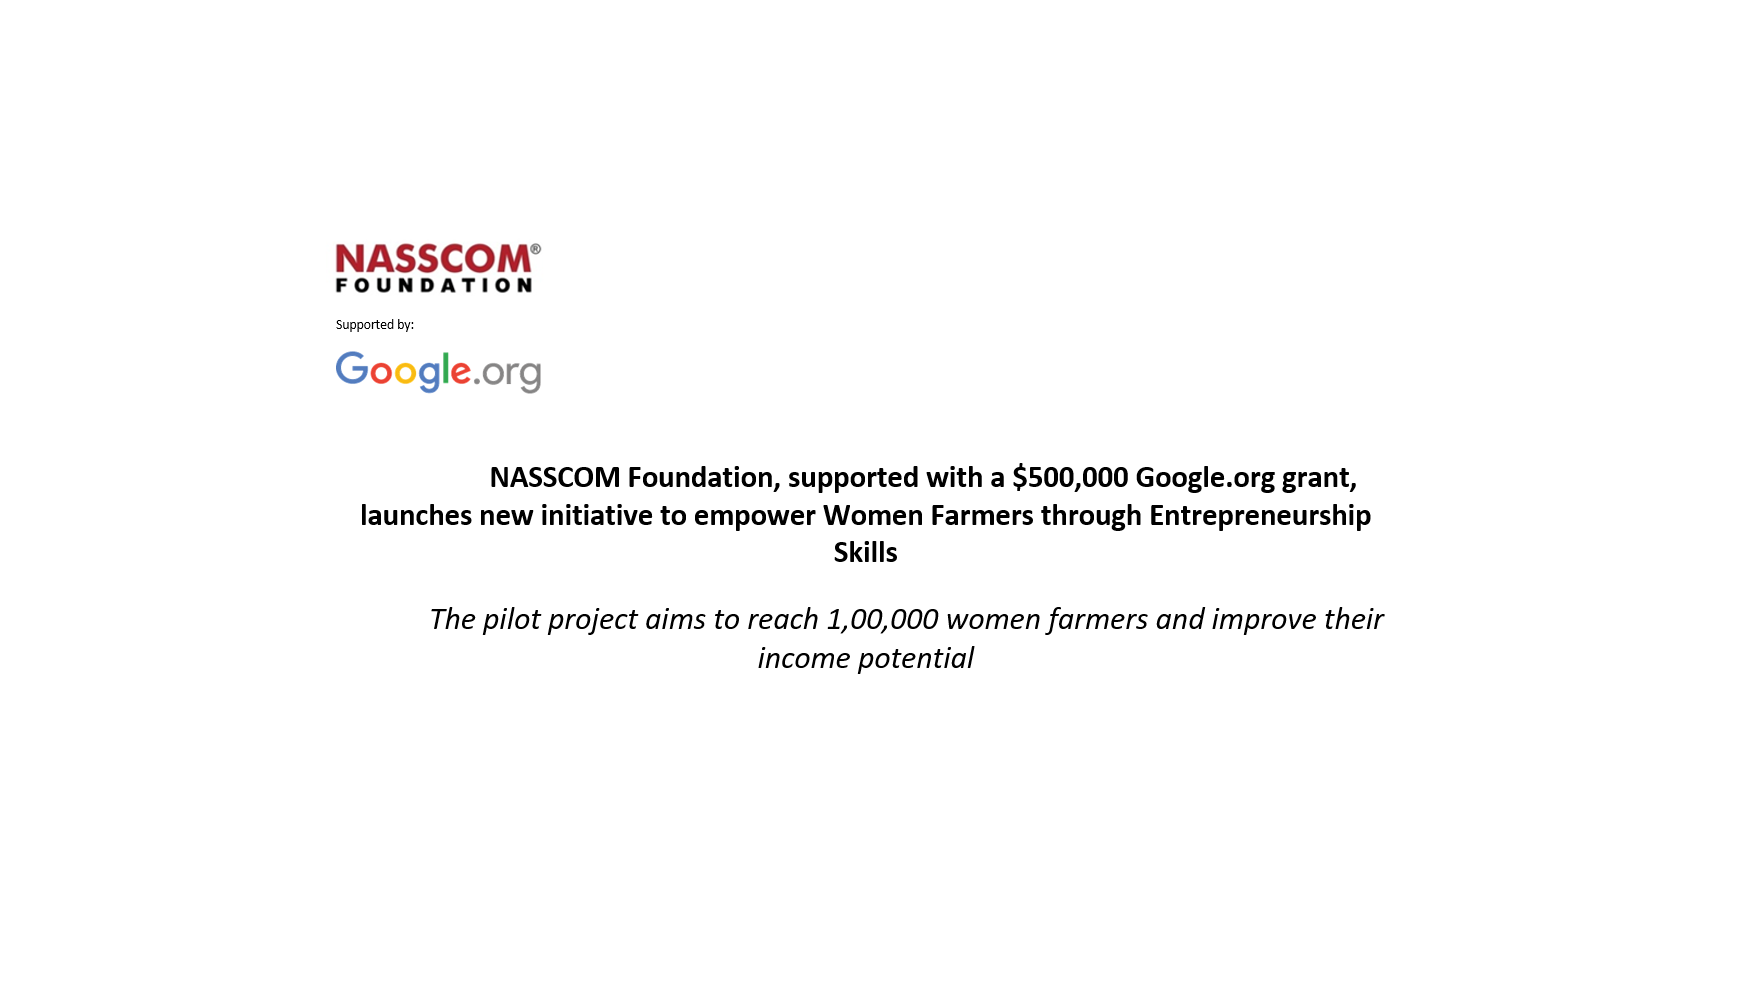 NASSCOM Foundation, supported with a $500,000 Google.org grant, launches new initiative to empower Women Farmers through Entrepreneurship Skills